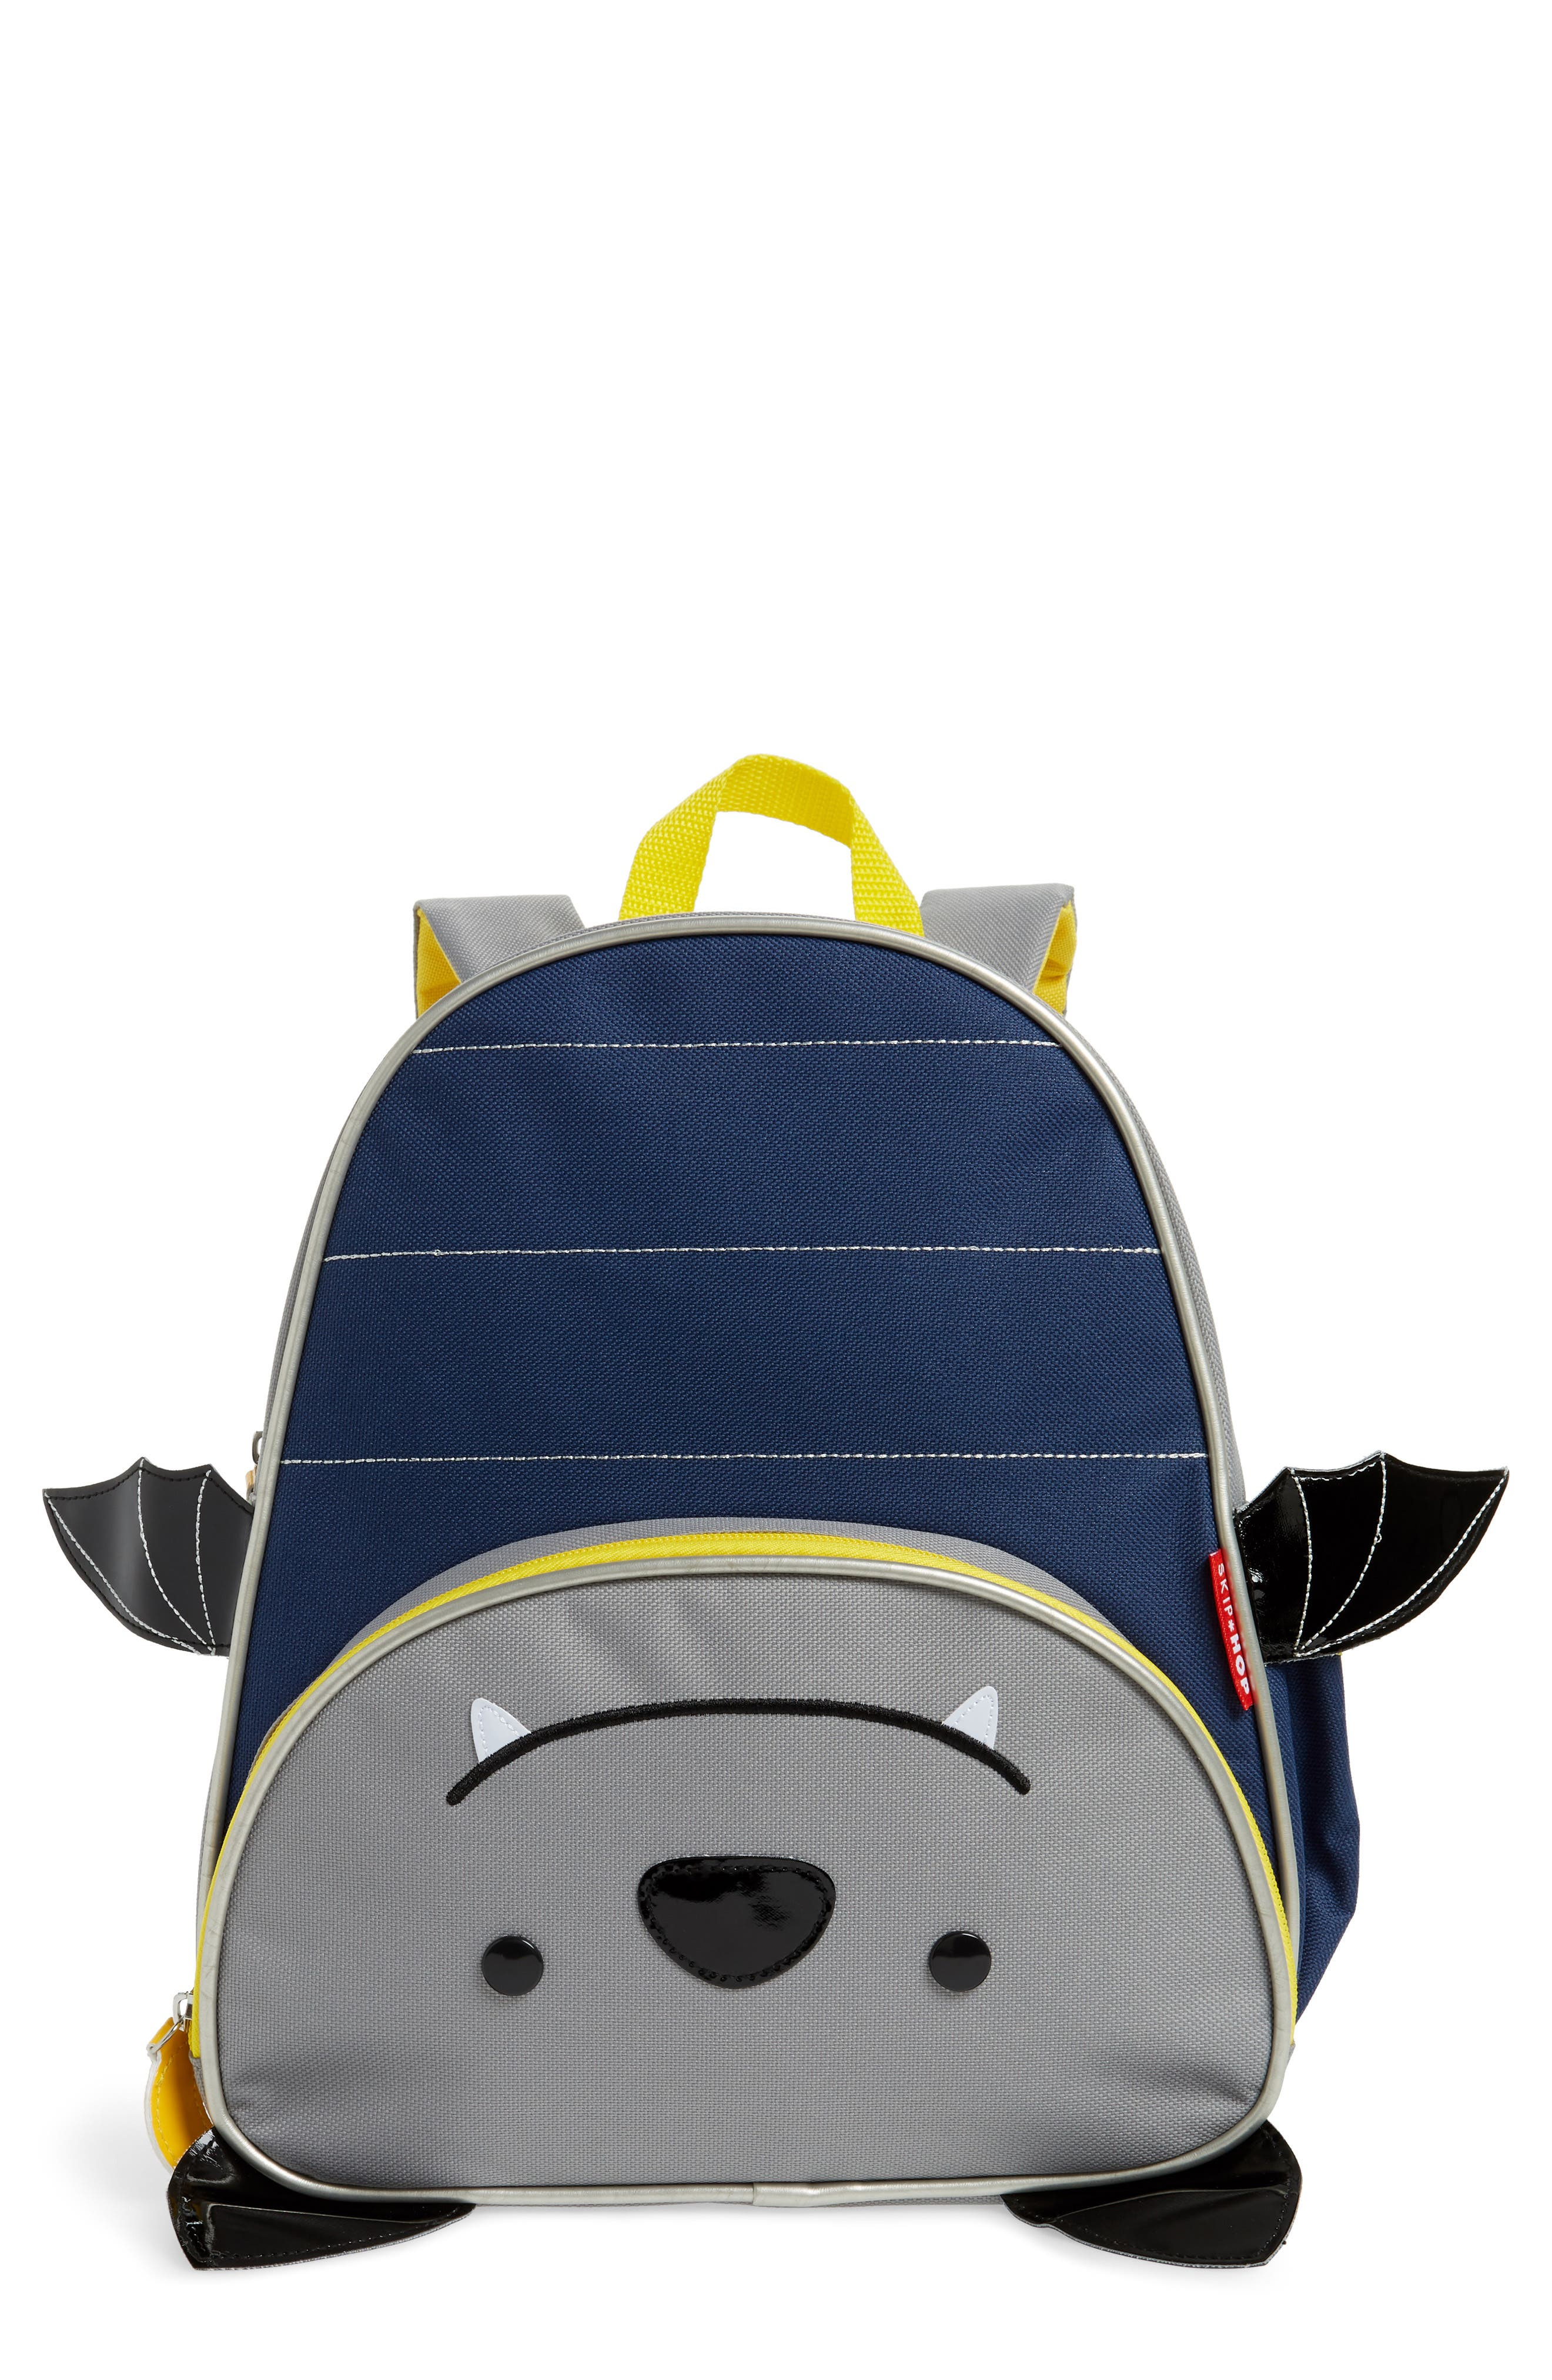 Zoo Pack Backpack,                             Main thumbnail 1, color,                             NAVY BLUE